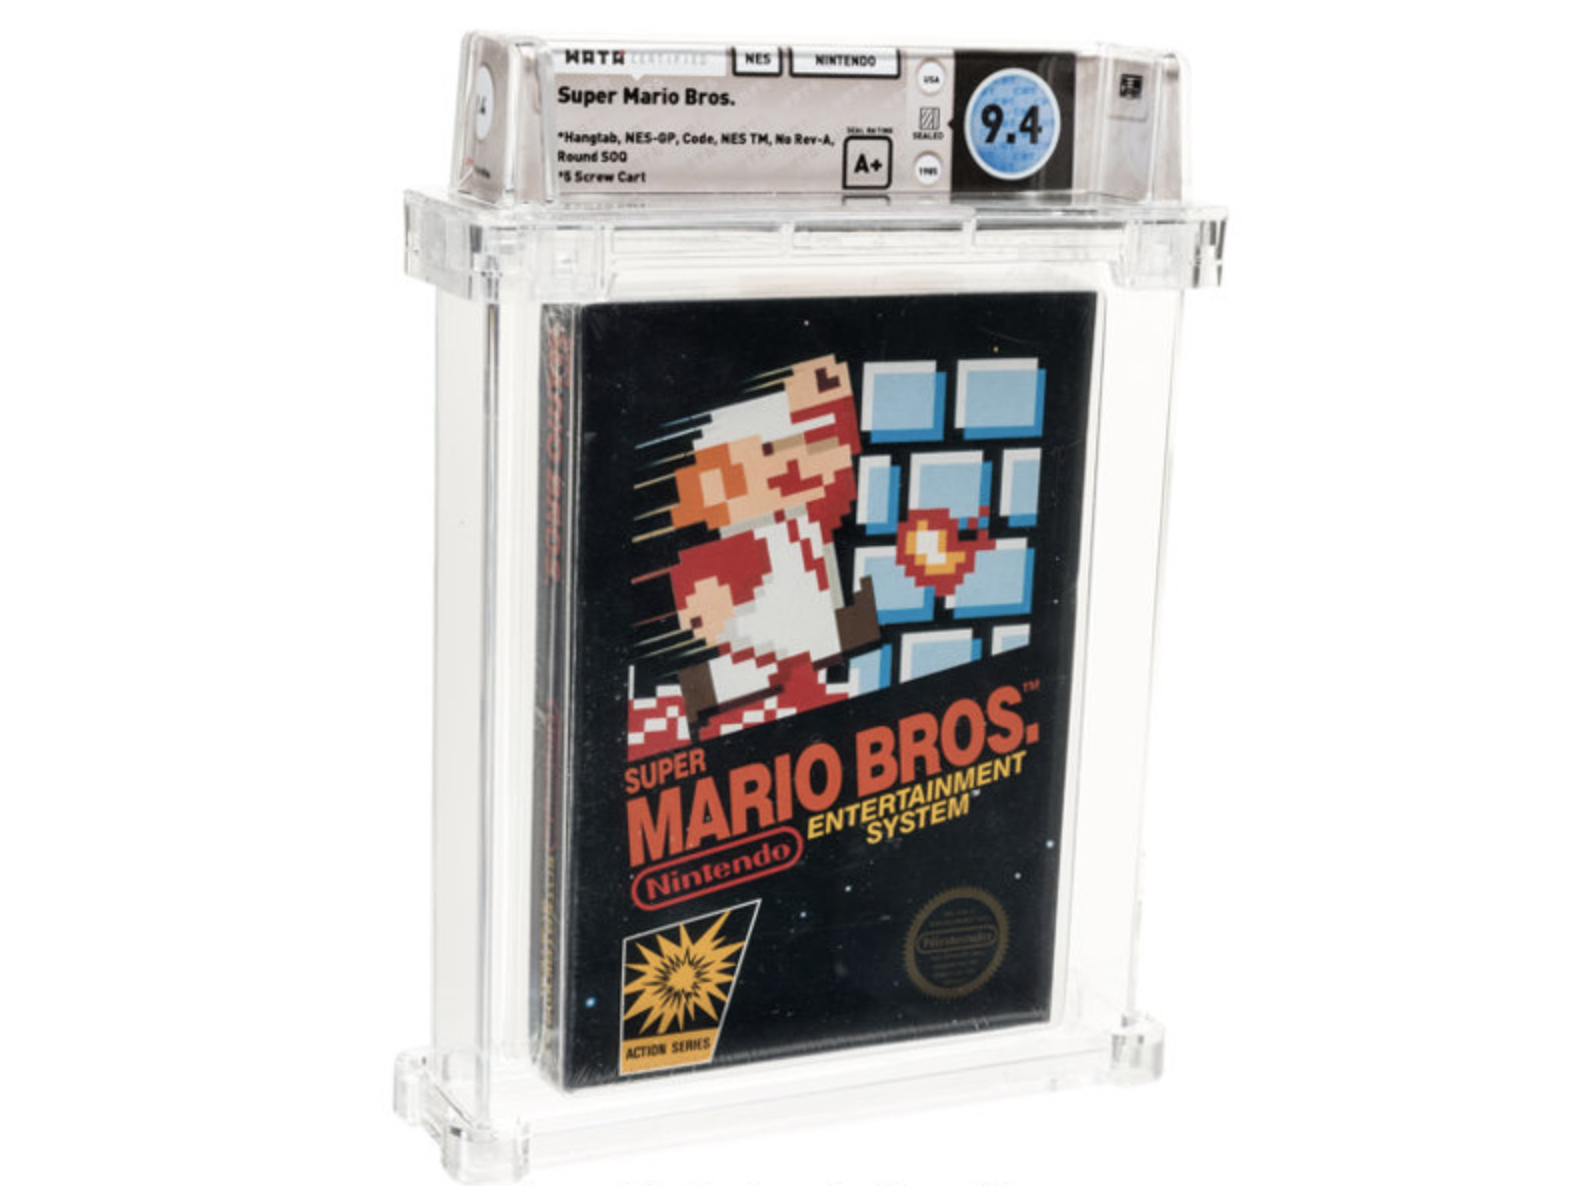 Sealed Copy of 'Super Mario Bros.' Sells for $114,000 at Auction thumbnail